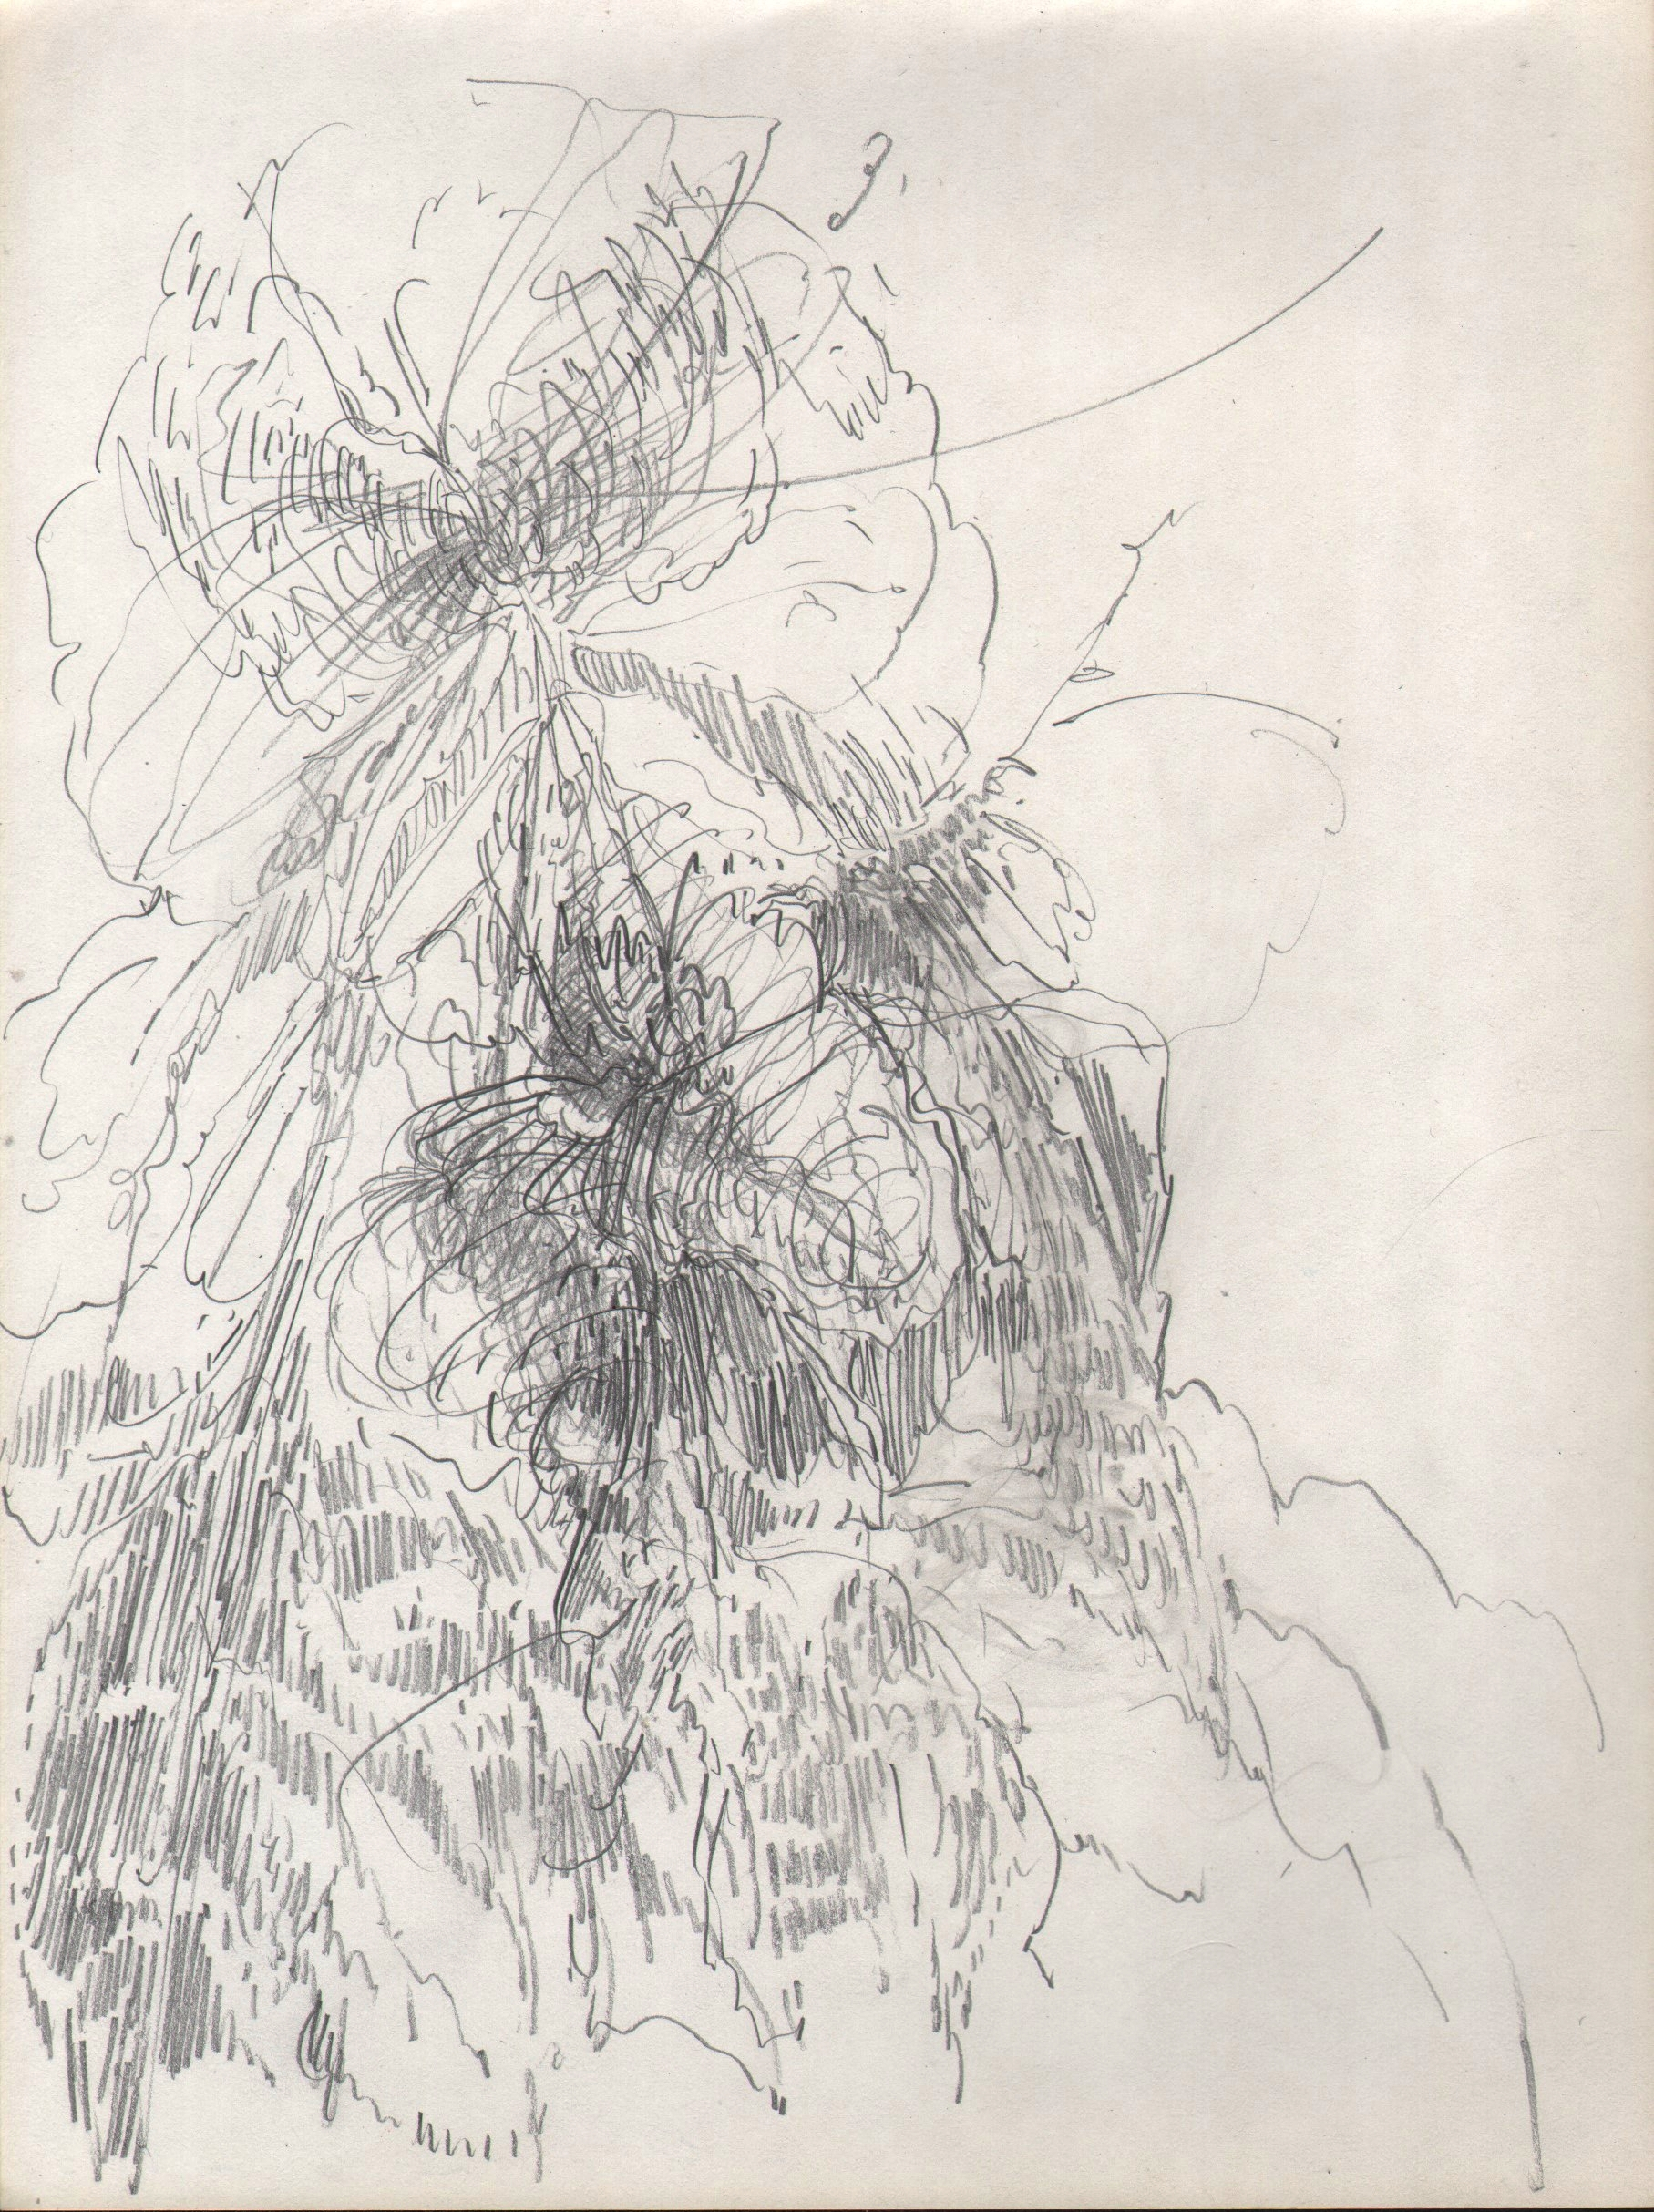 Live Action, Flower and Bug, 2015, 8 x 6 inches, pencil on paper